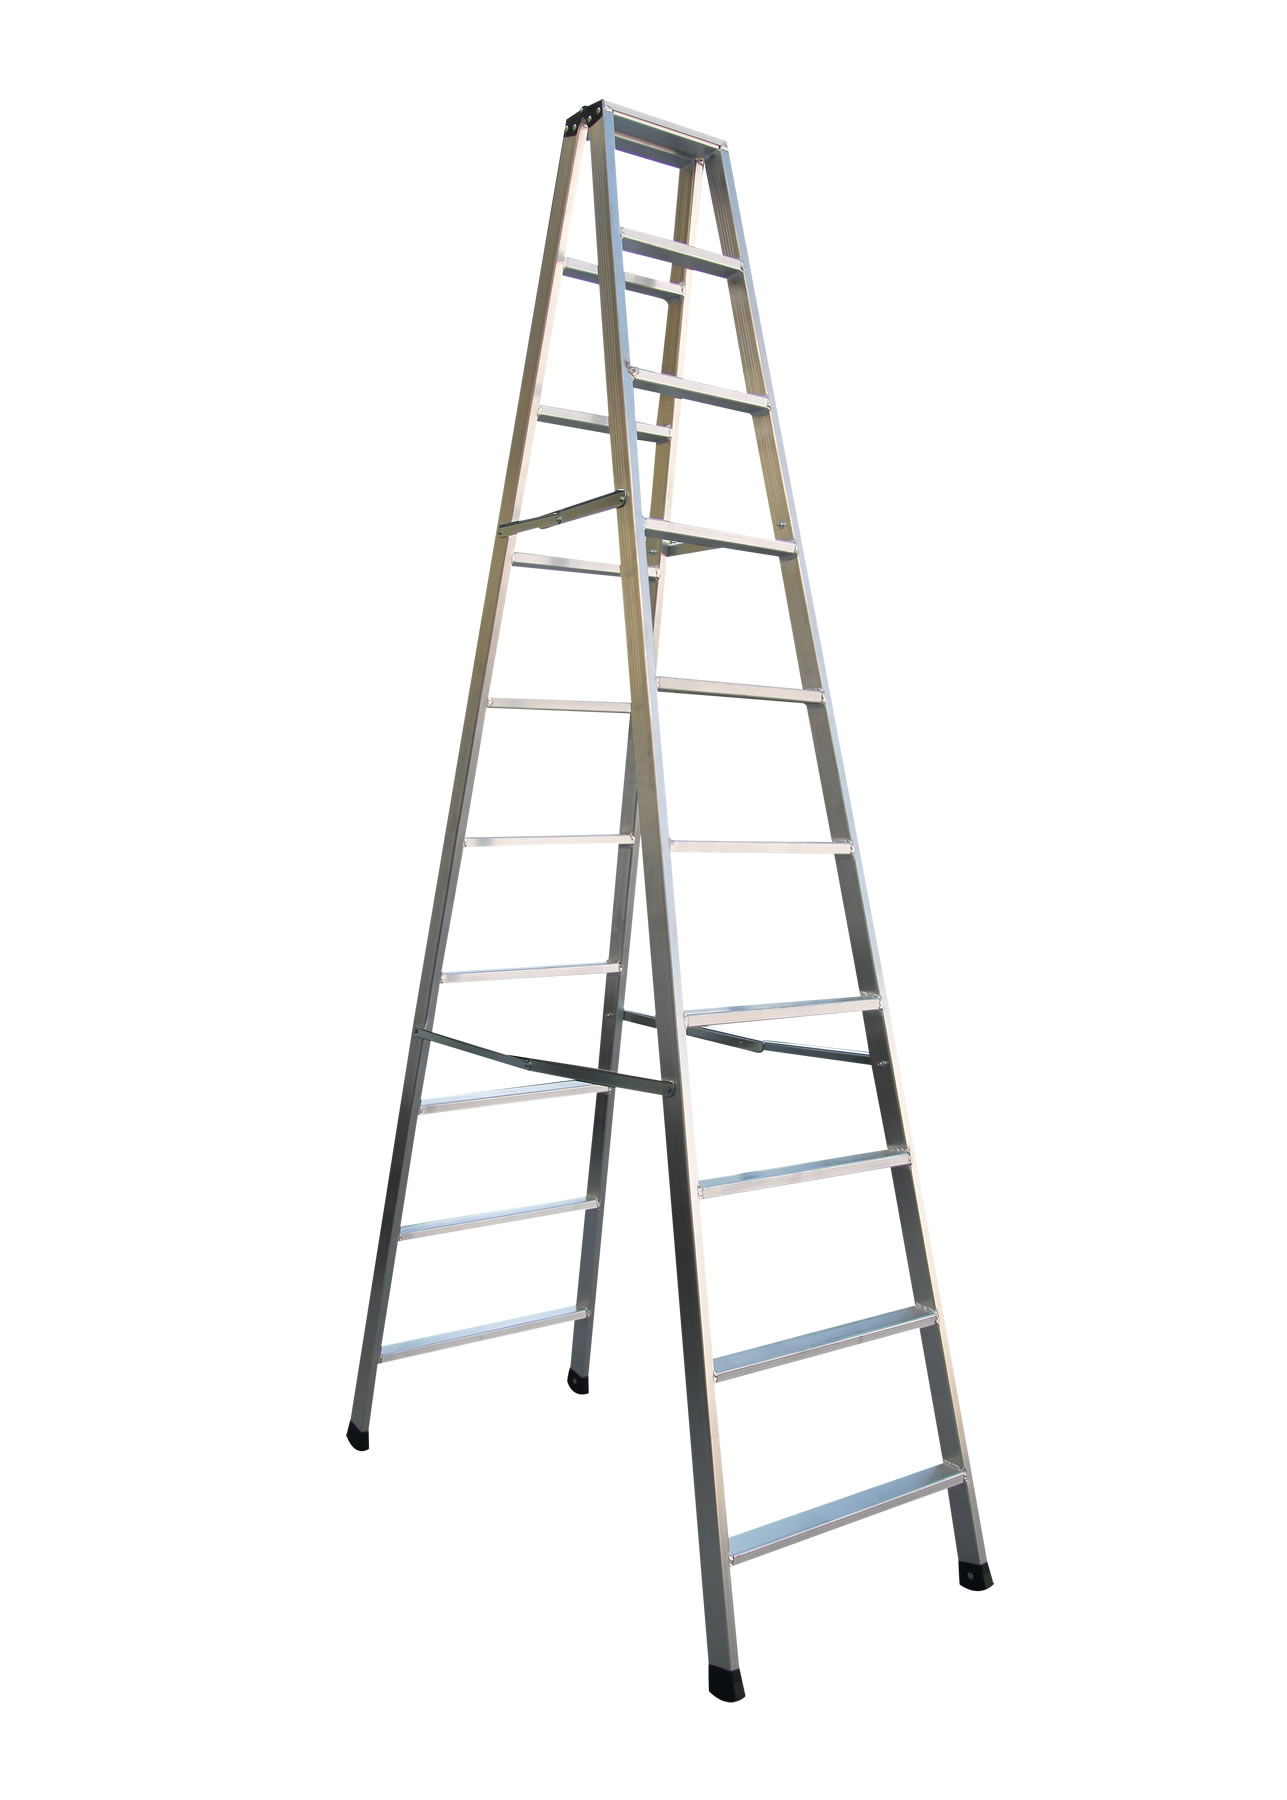 Acl Stepladder Series Chiao Teng Hsin Enterprise Co Ltd